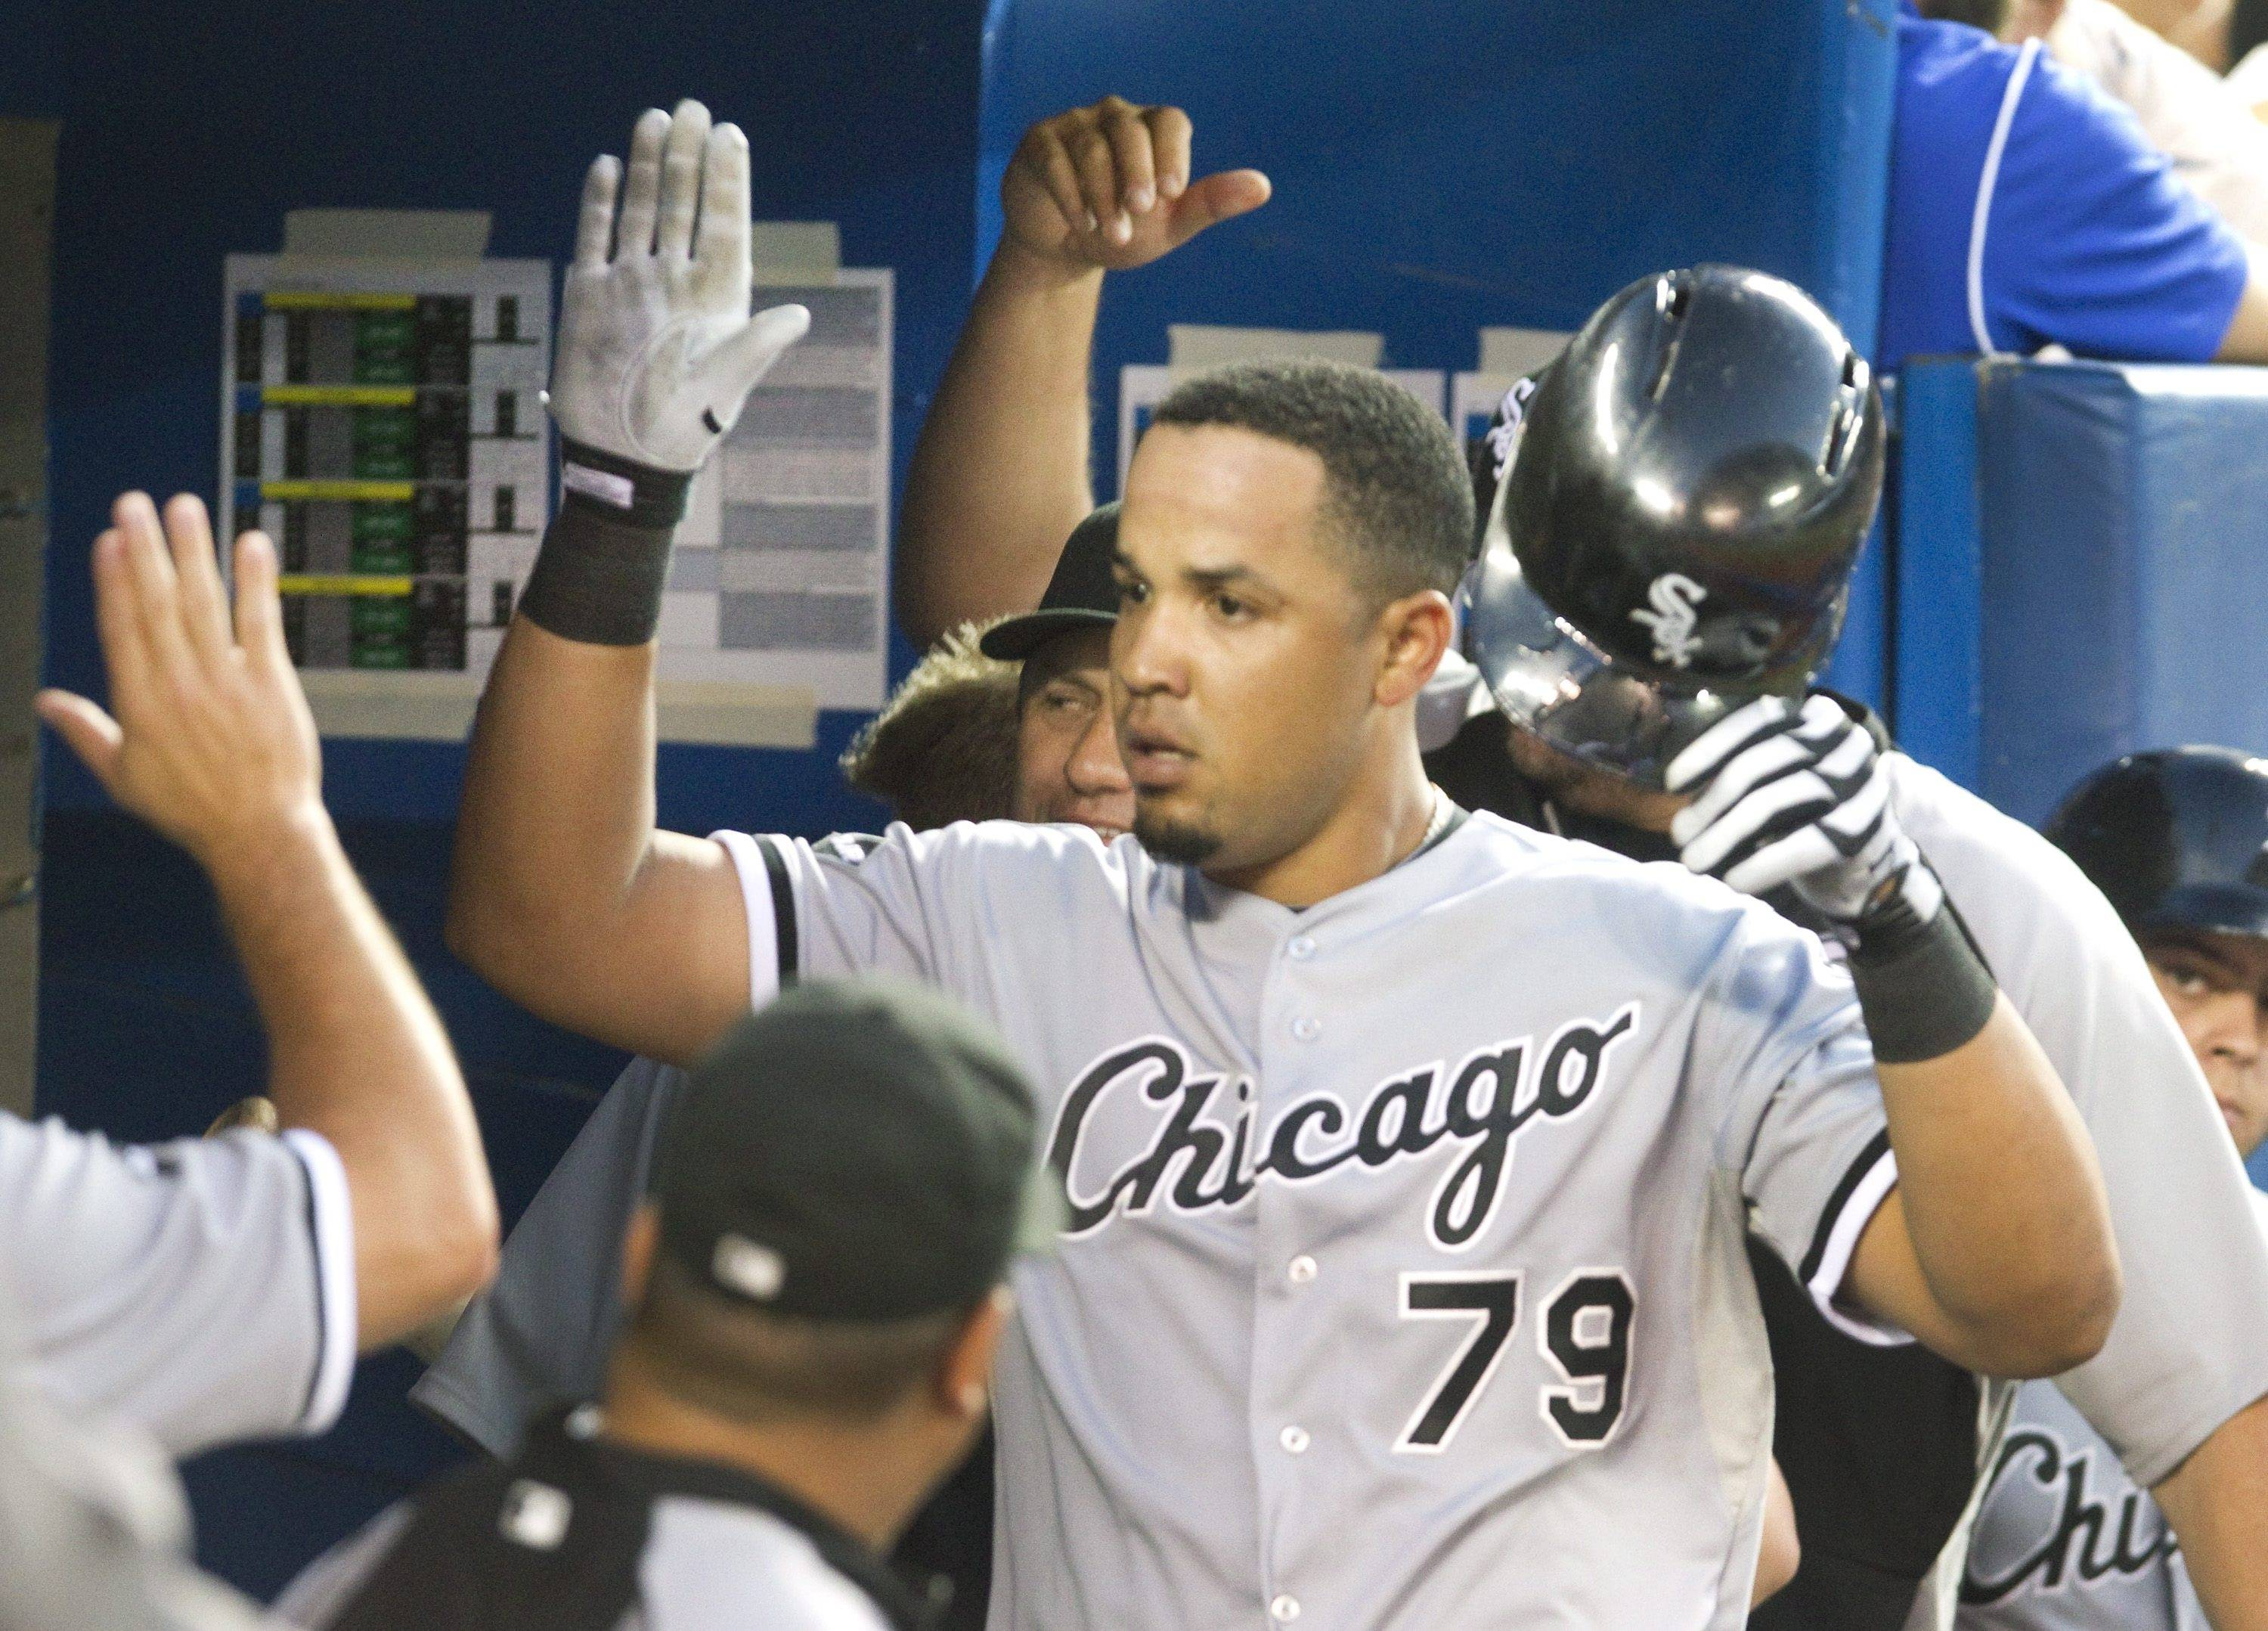 White Sox's Jose Abreu is congratulated in the dugout after he hit his second home run of the night off Toronto Blue Jays starting pitcher R.A. Dickey during the seventh inning of their baseball game Friday in Toronto. Abreu is tied for the league lead in home runs and is a bona fide slugger.